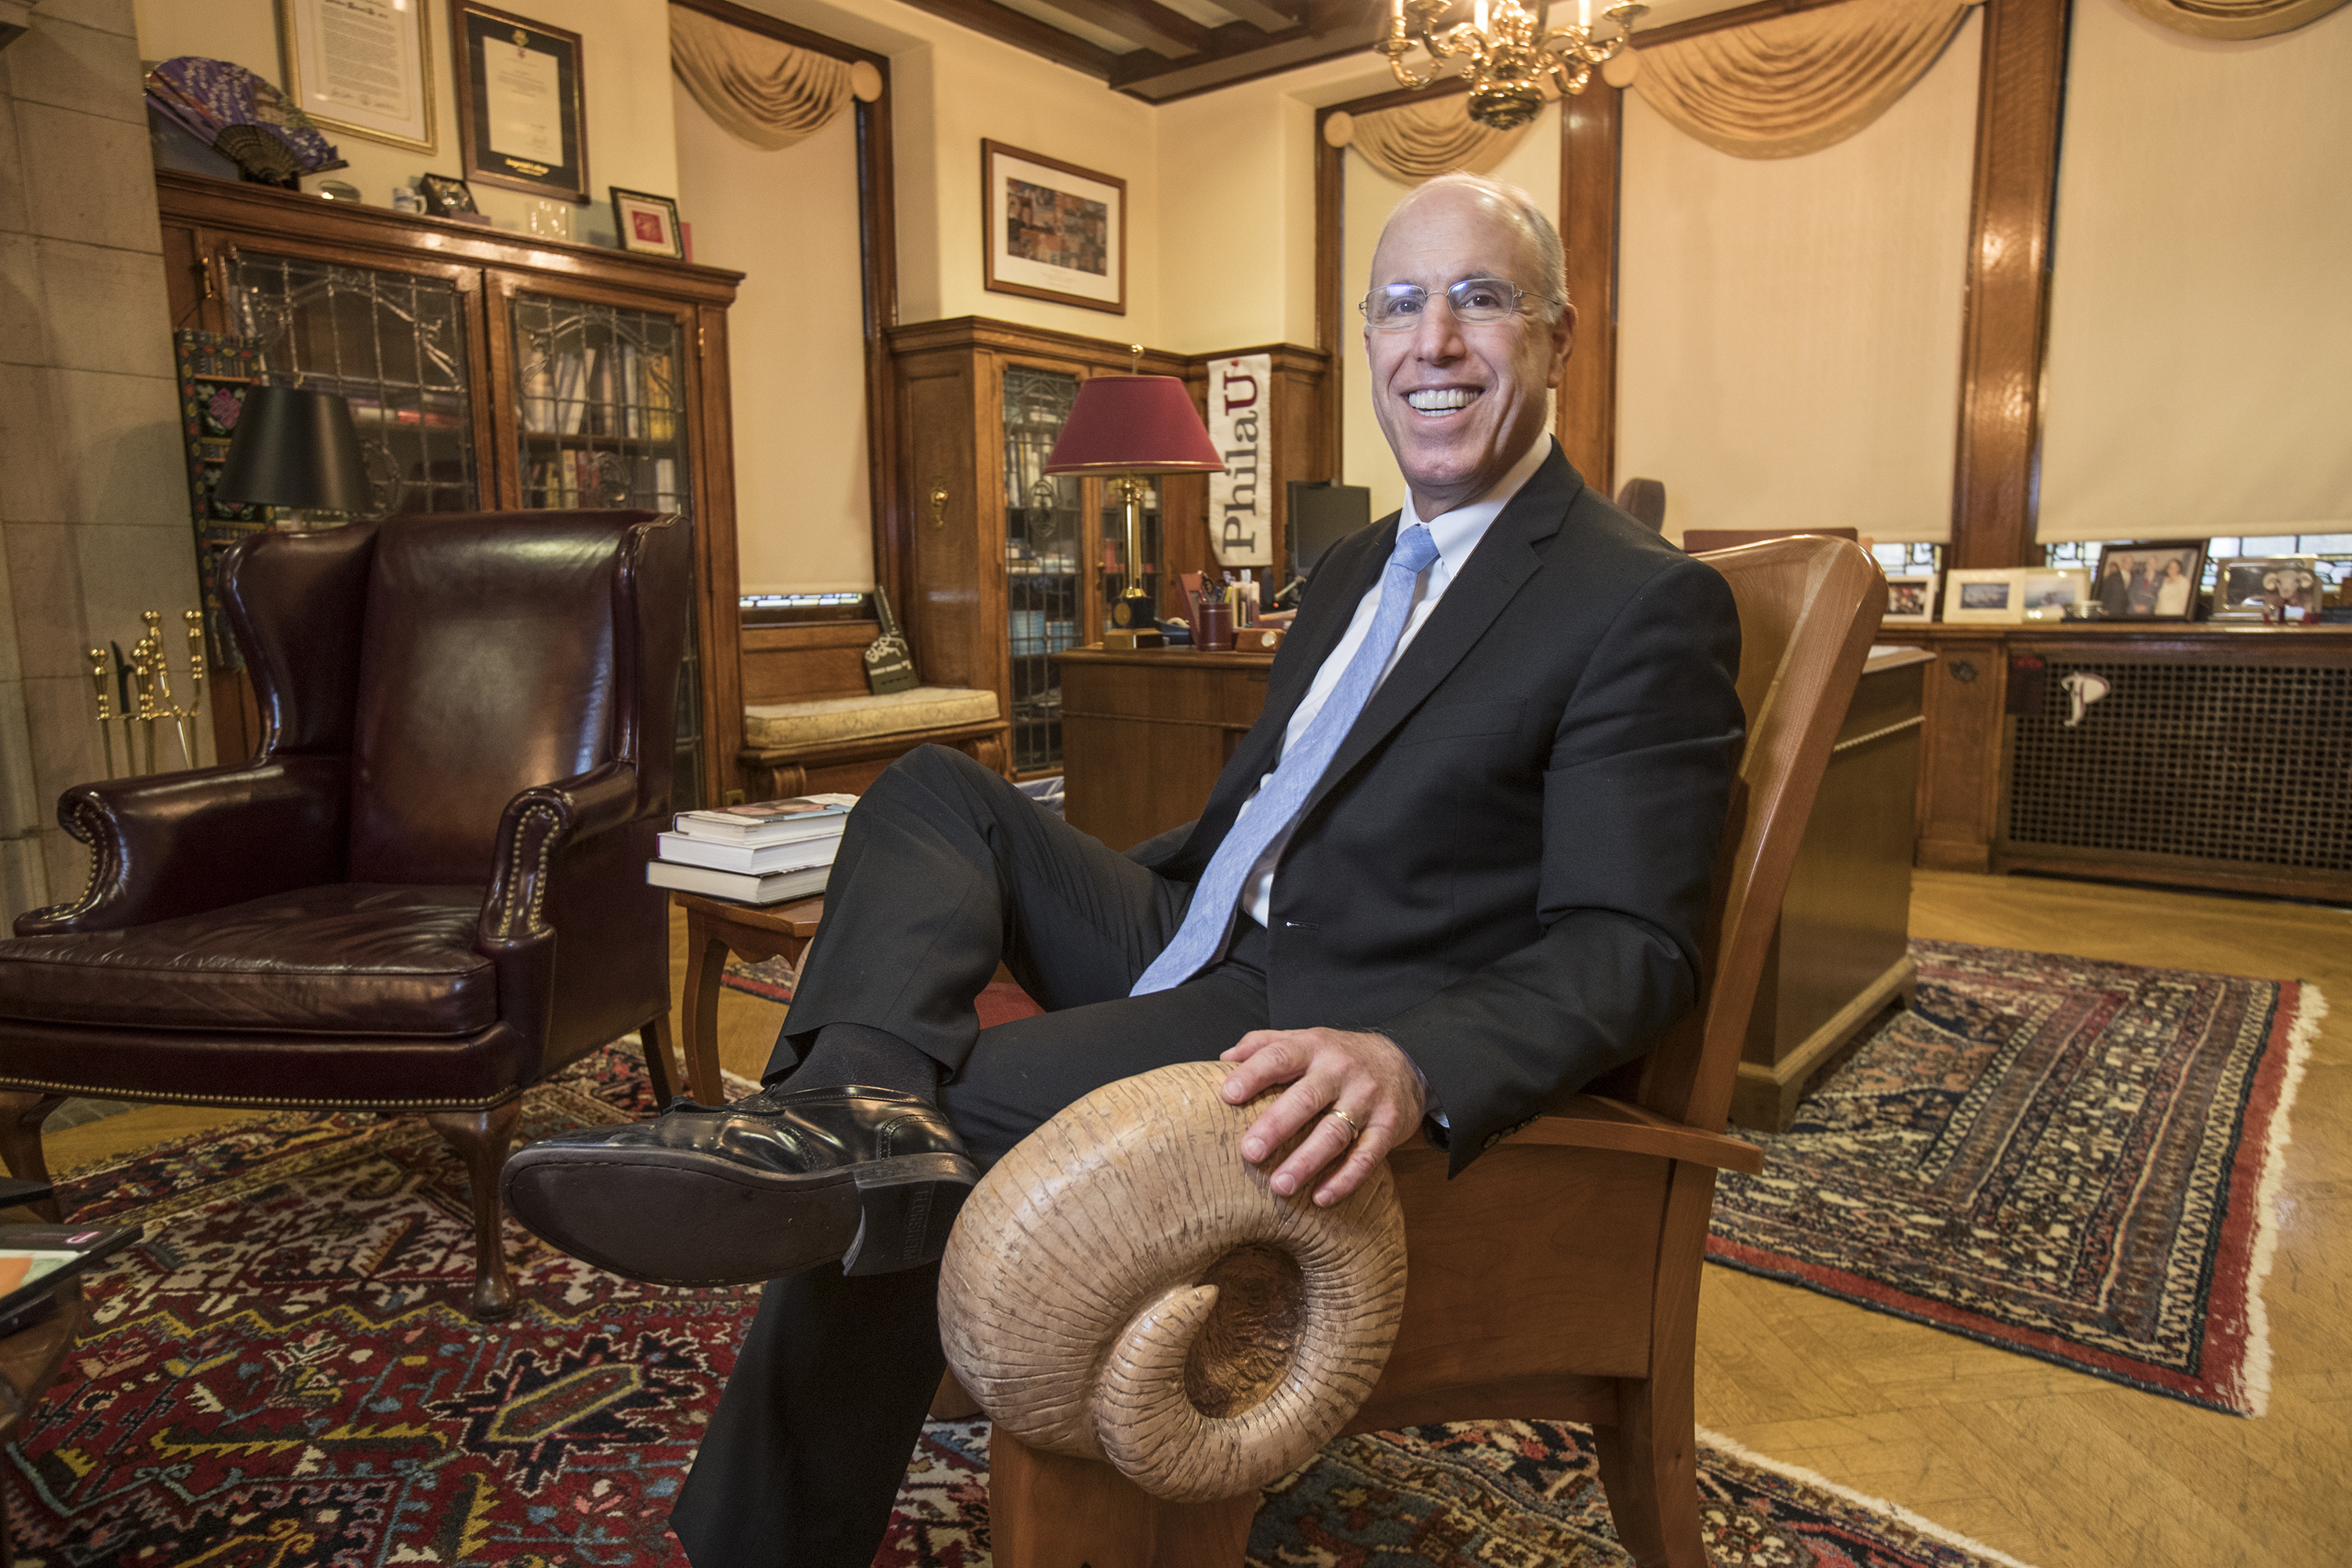 Stephen Spinelli, chancellor of Jefferson University and former president of Philadelphia University sitting in the Ram chair in his office. MICHAEL BRYANT / Staff Photographer